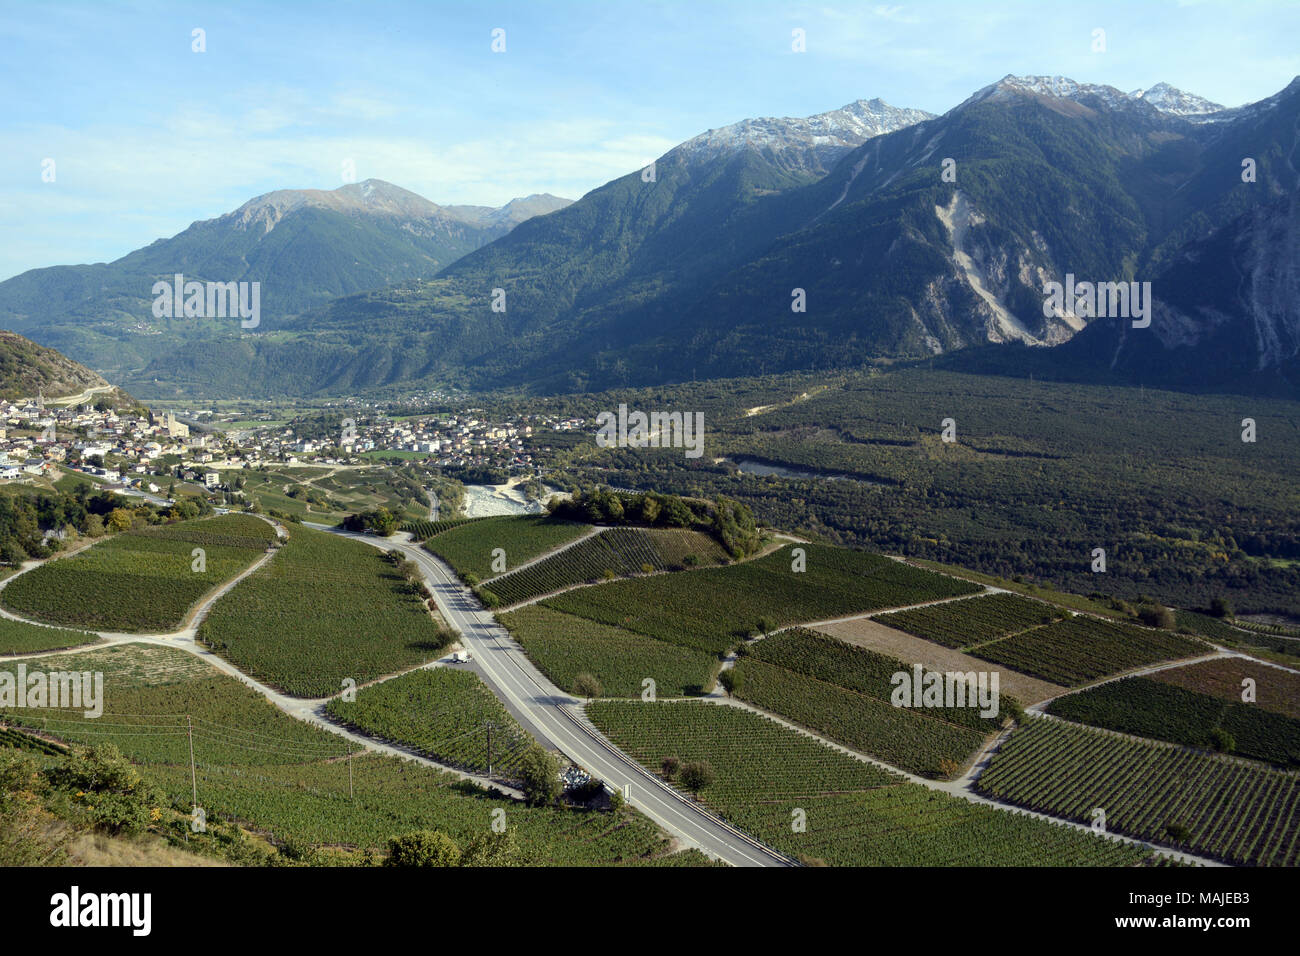 The city of Leuk and vineyards on its edges, seen from the Swiss Wine Trail, in the upper Rhone Valley, canton of Valais, southern Switzerland. - Stock Image